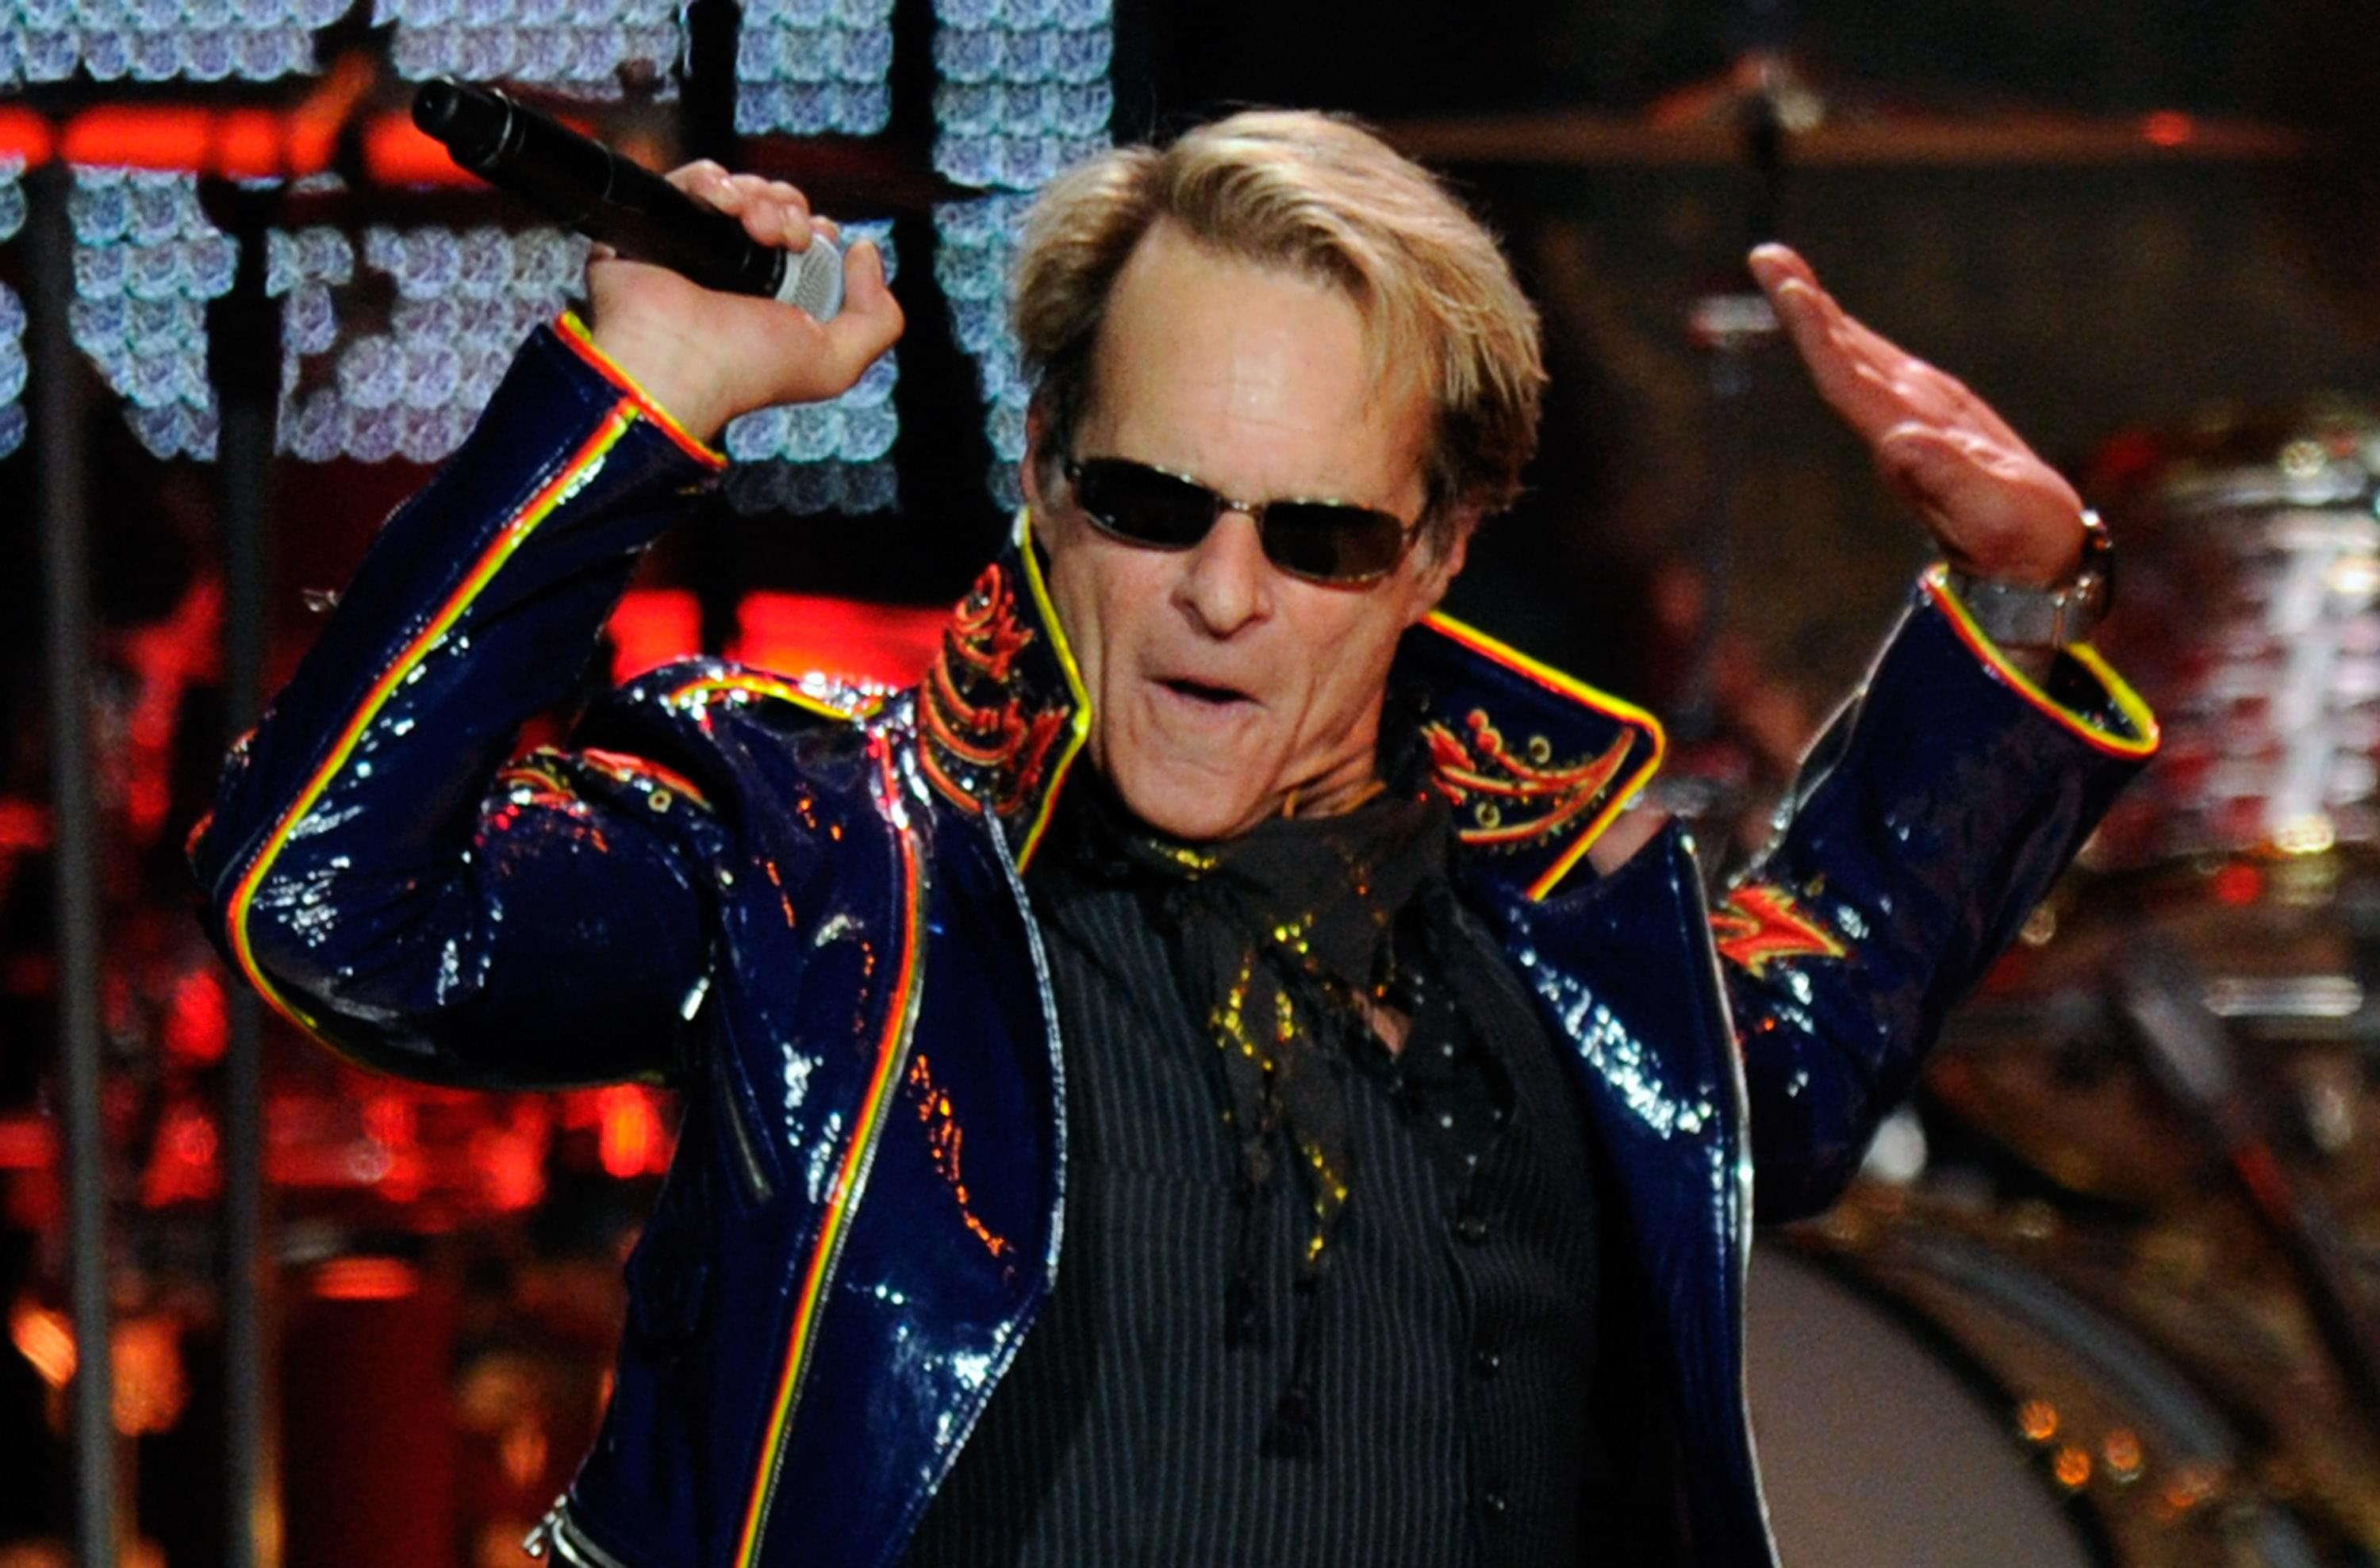 What's David Lee Roth's Future Goal? To Be The 'King Of Las Vegas'!